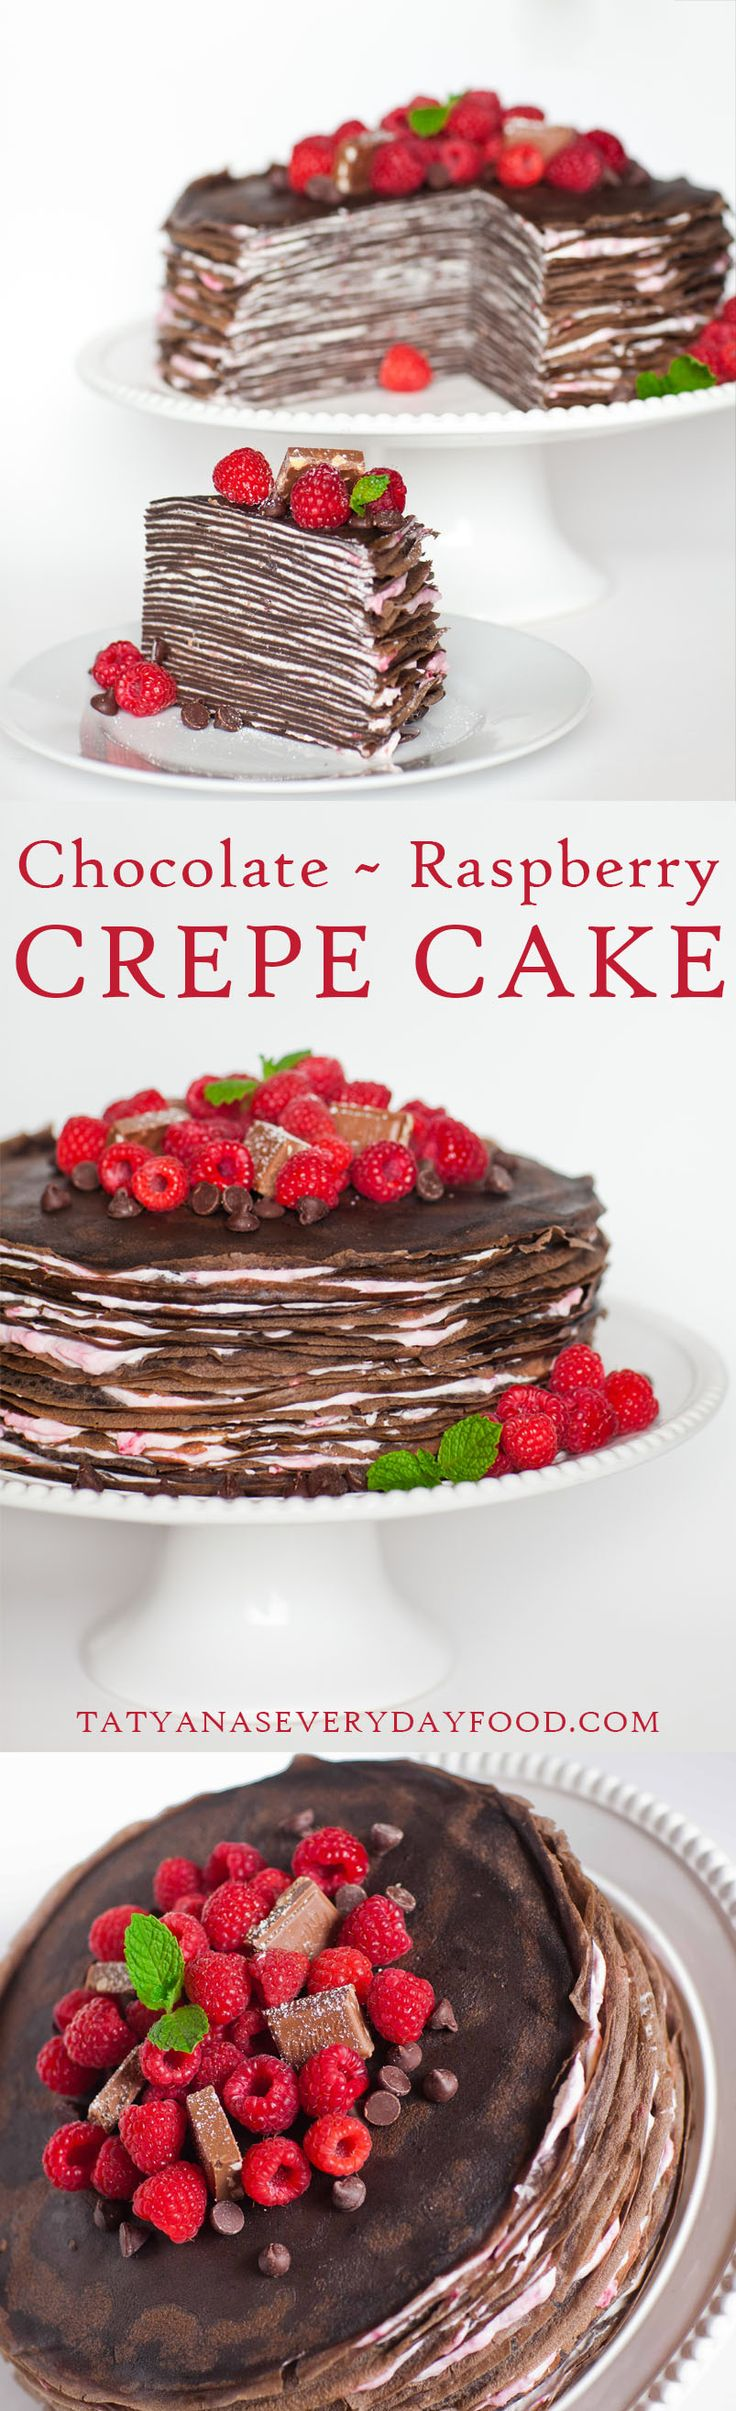 Chocolate Raspberry Crepe Cake with Mascarpone ~ Video Tutorial ~ Tatyana's Everyday Food